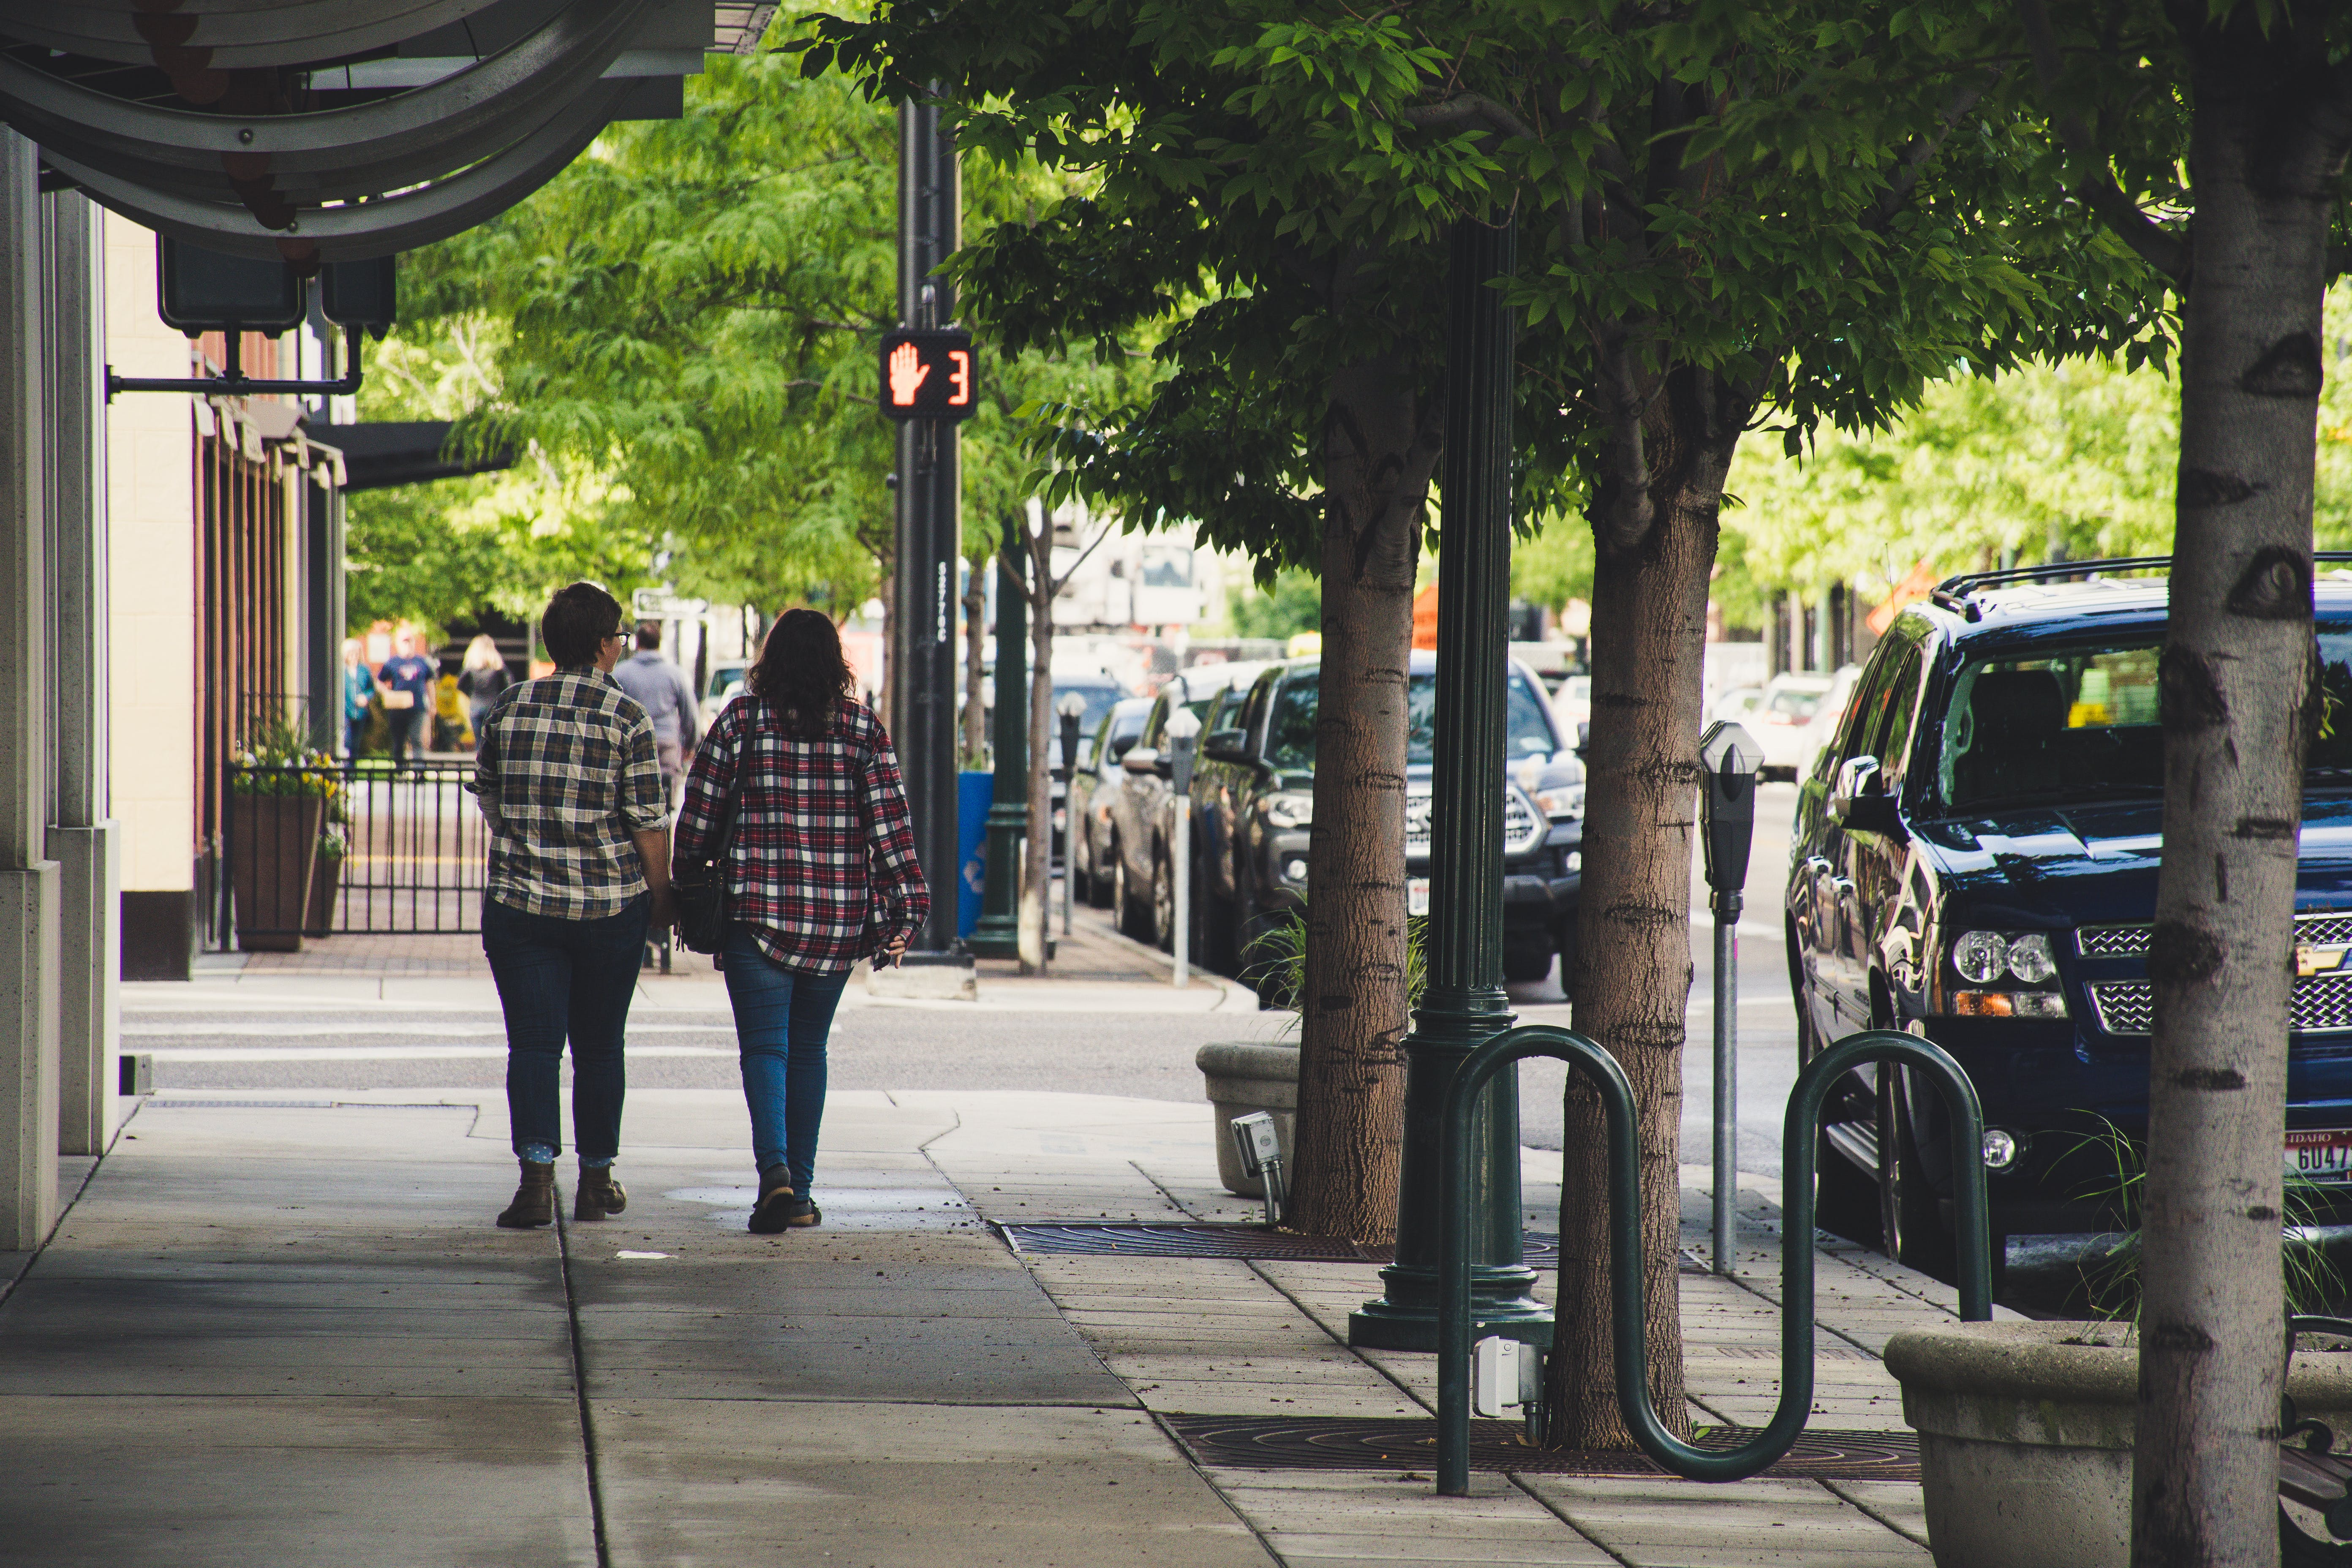 Two Woman in Plaid Sport Shirt Walking on Concrete Pathway Near Street